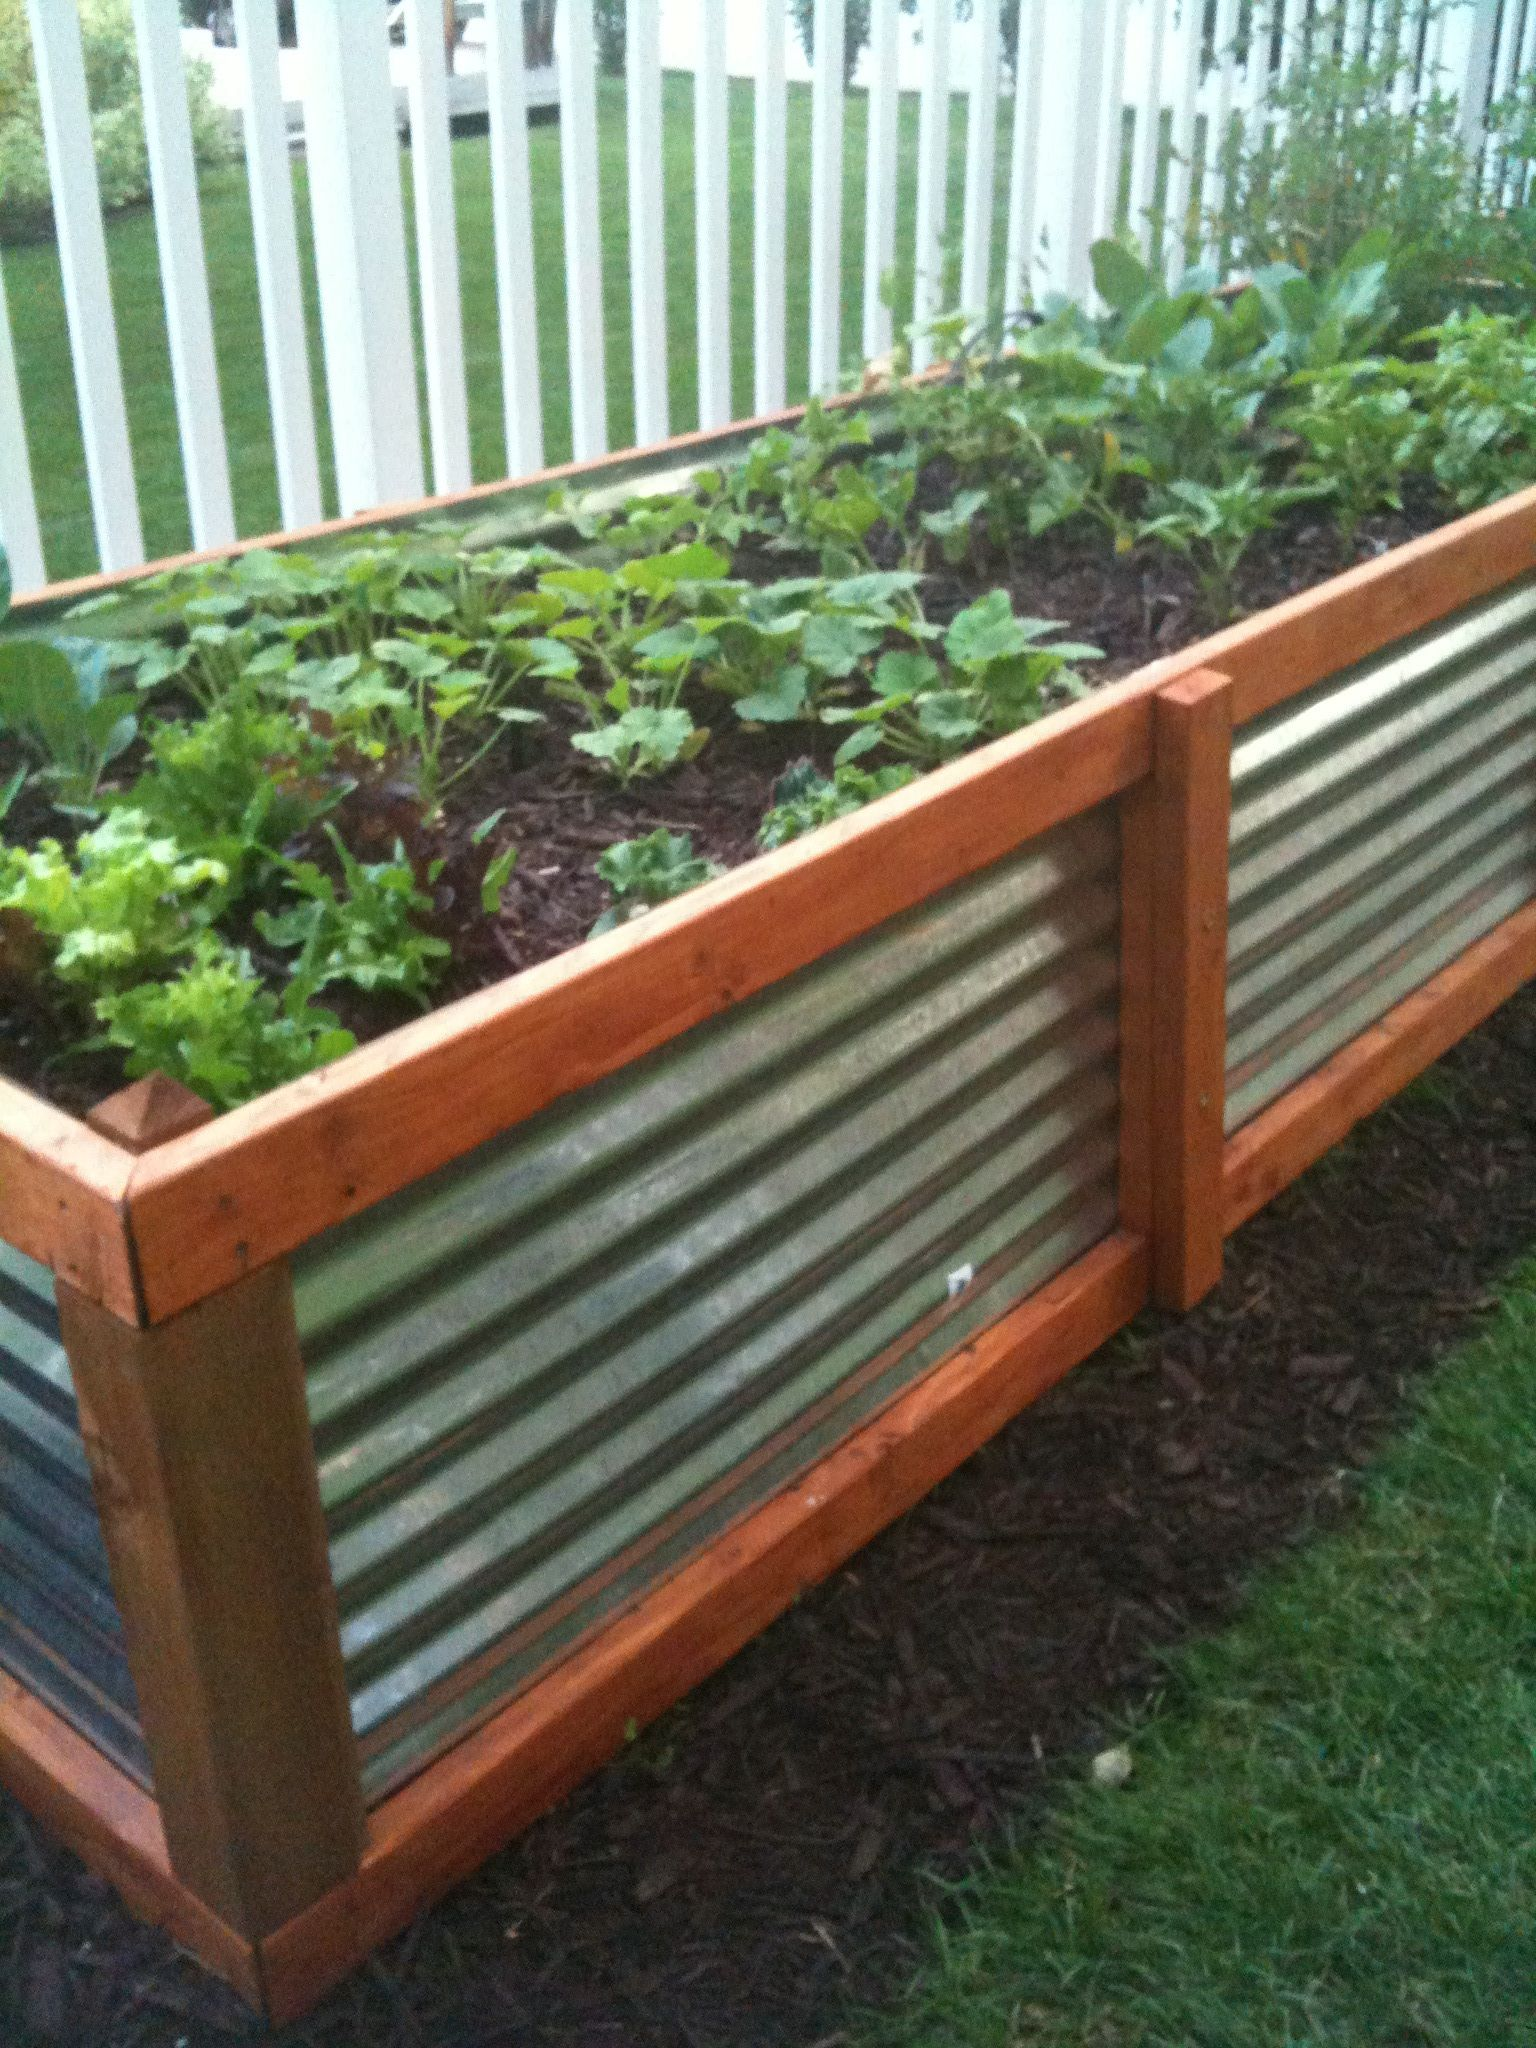 12 Raised Garden Bed Tutorials Above Ground Garden